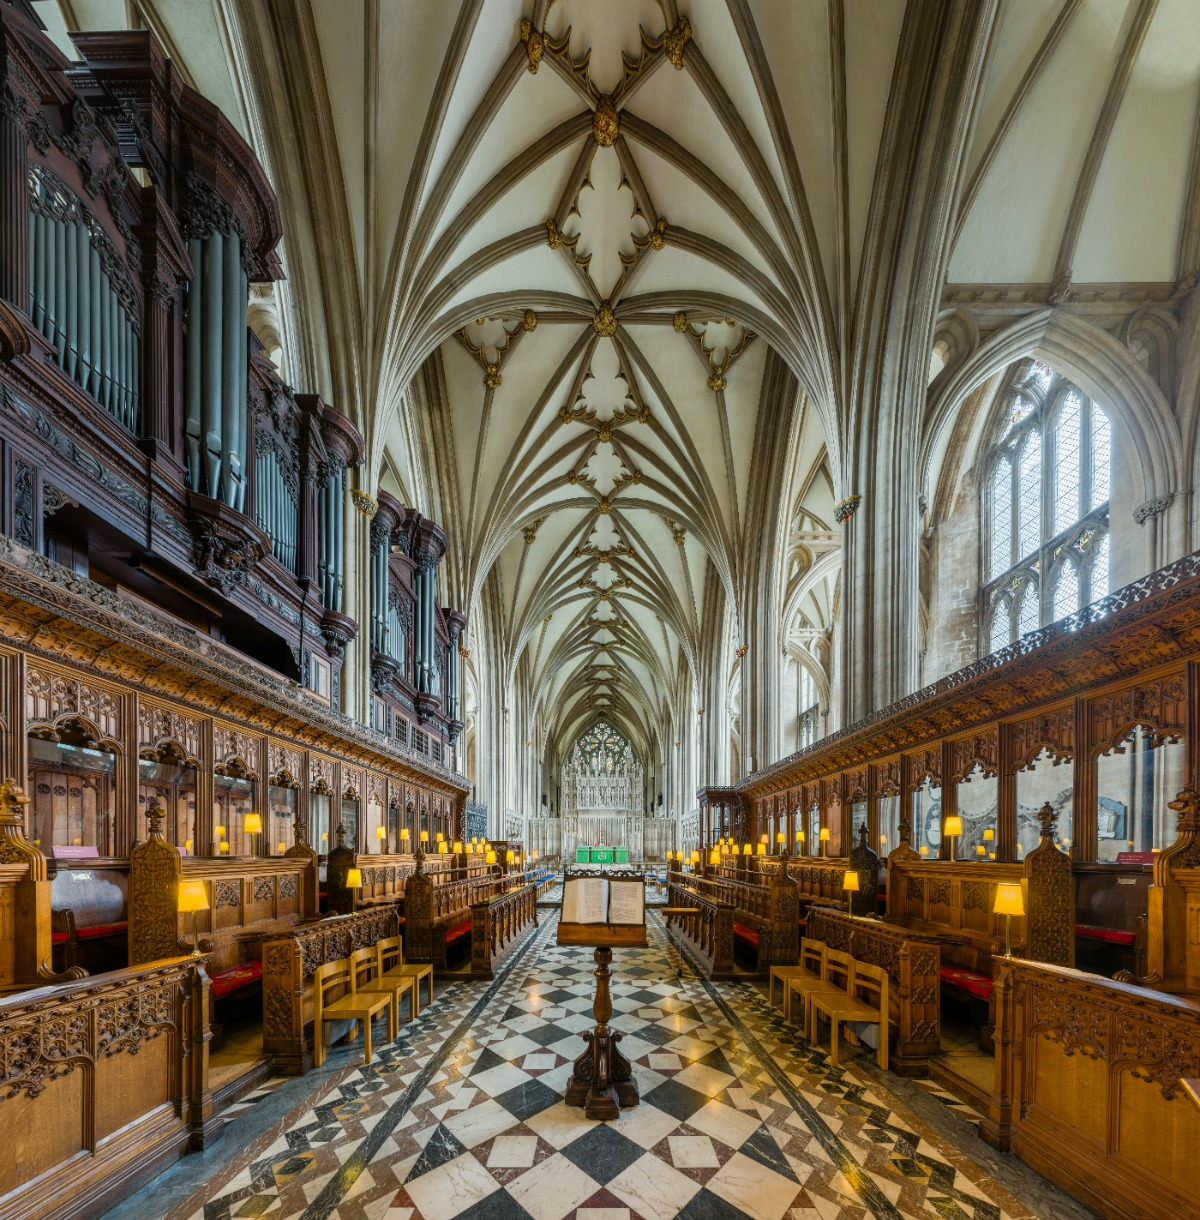 Vaulting of the choir. Credit: David Iliff